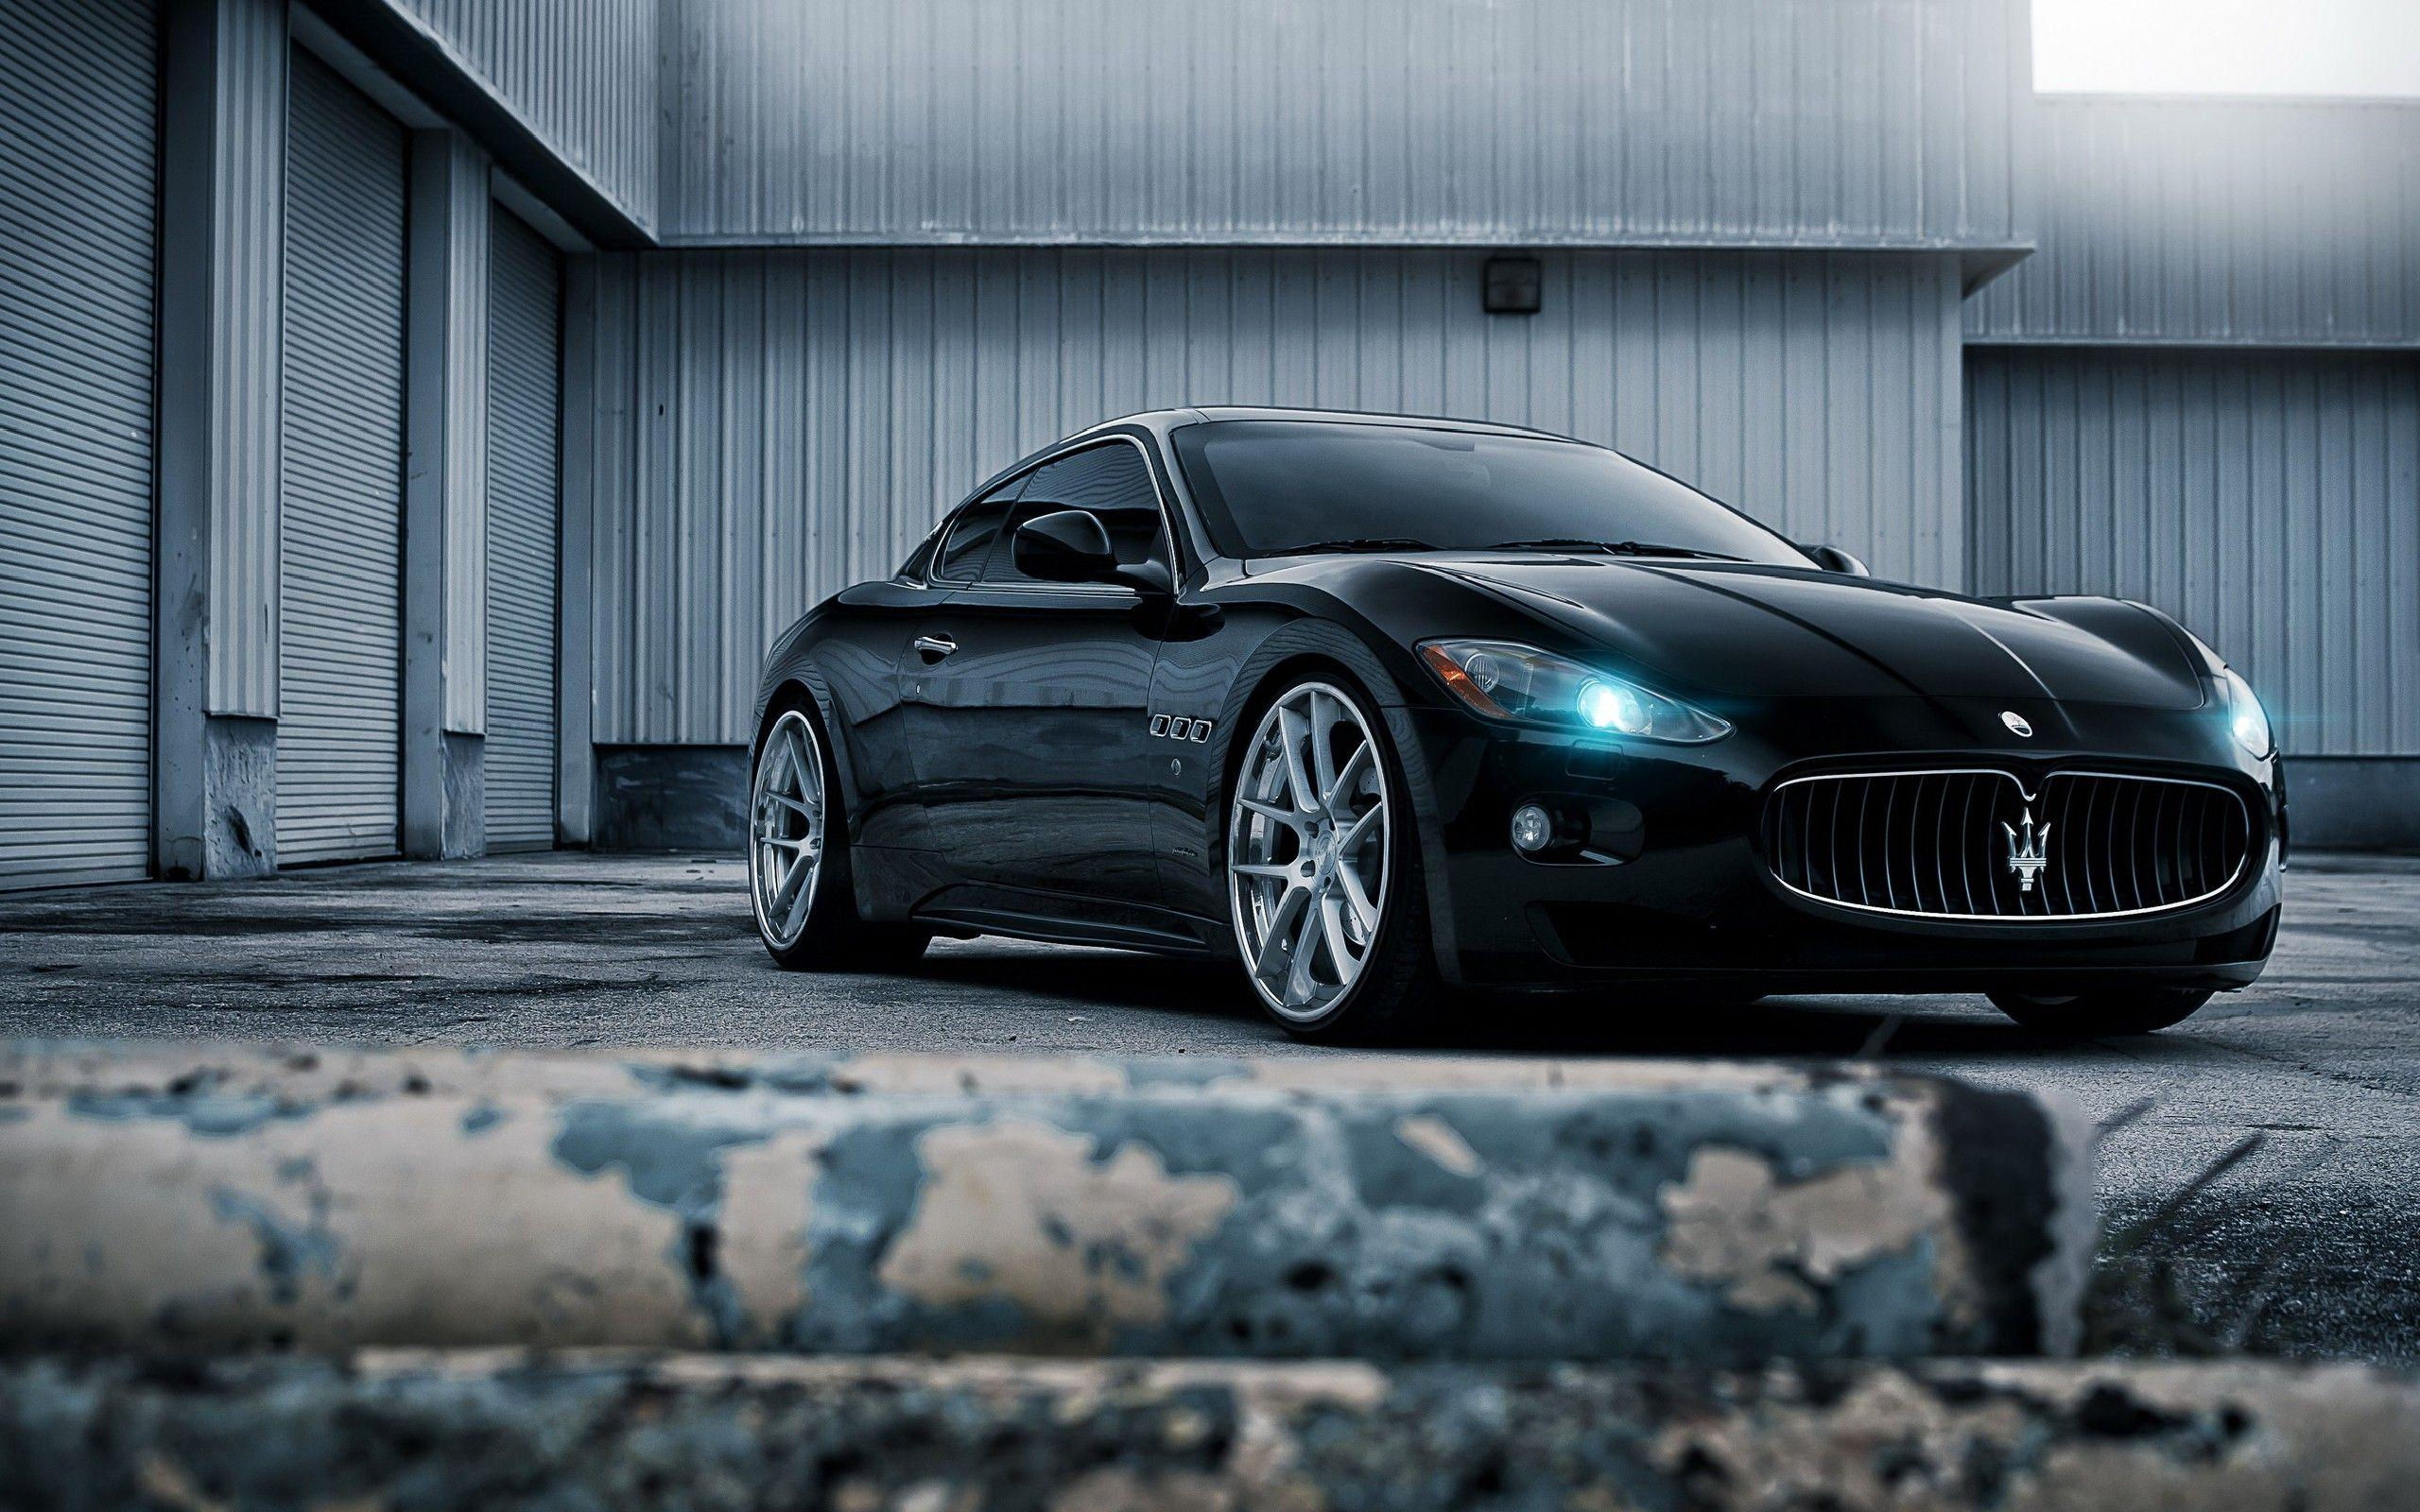 Daily Wallpaper: Maserati GranTurismo | I Like To Waste My Time